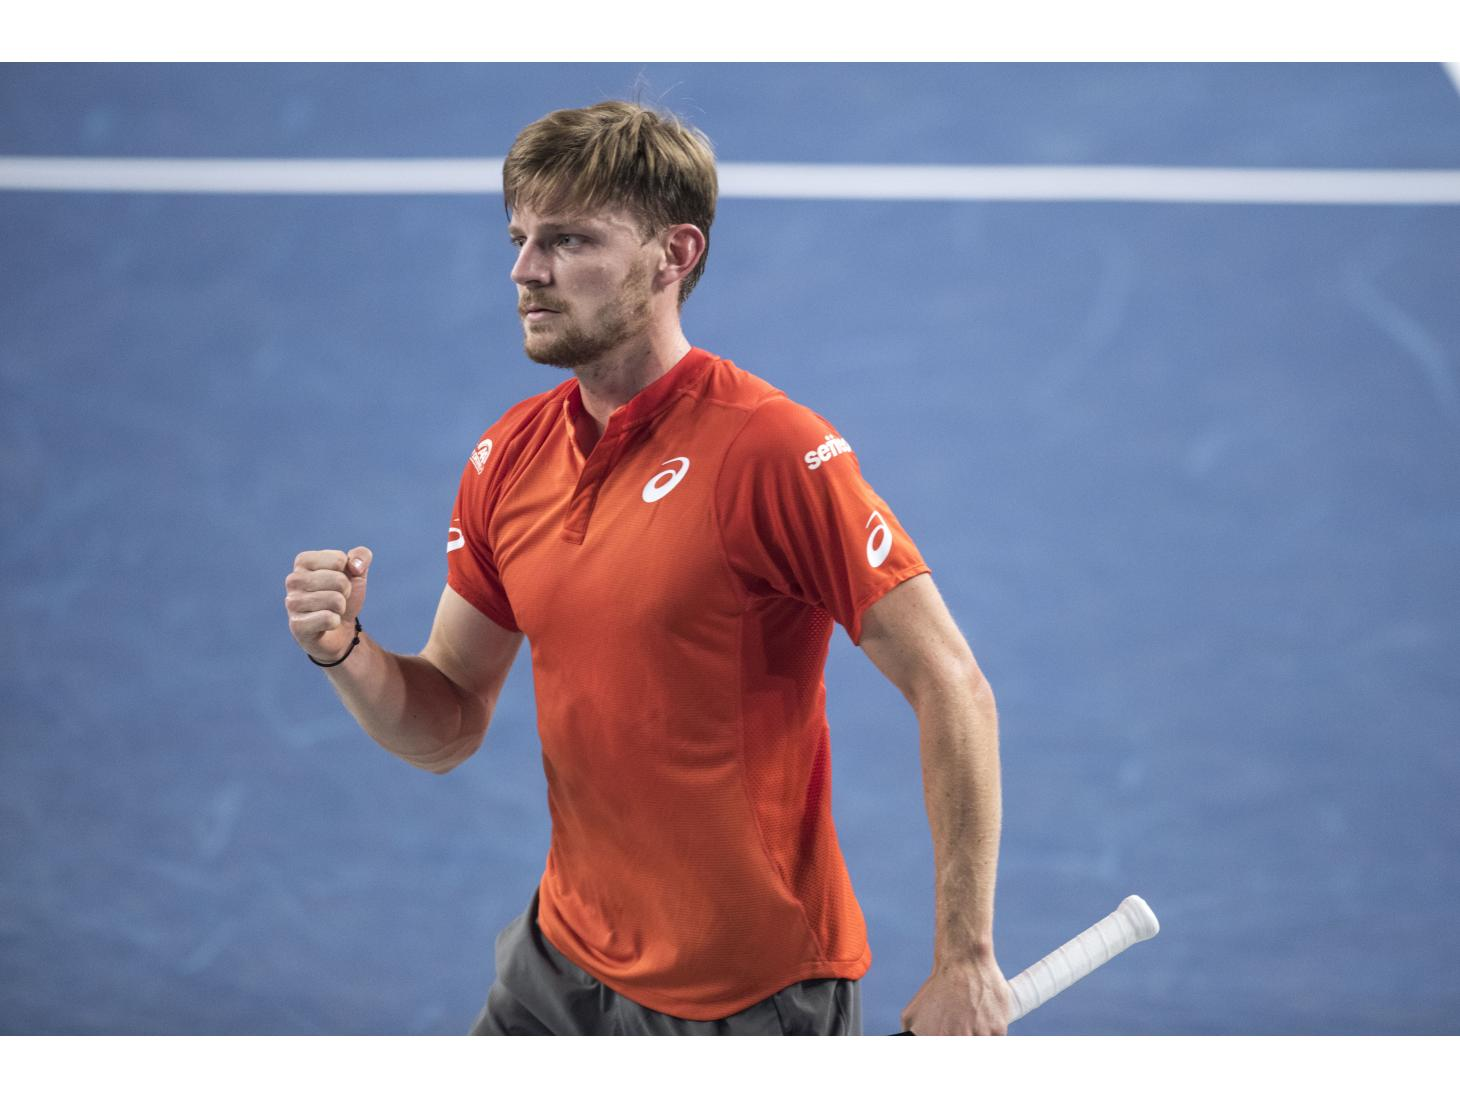 Goffin too good for Paire